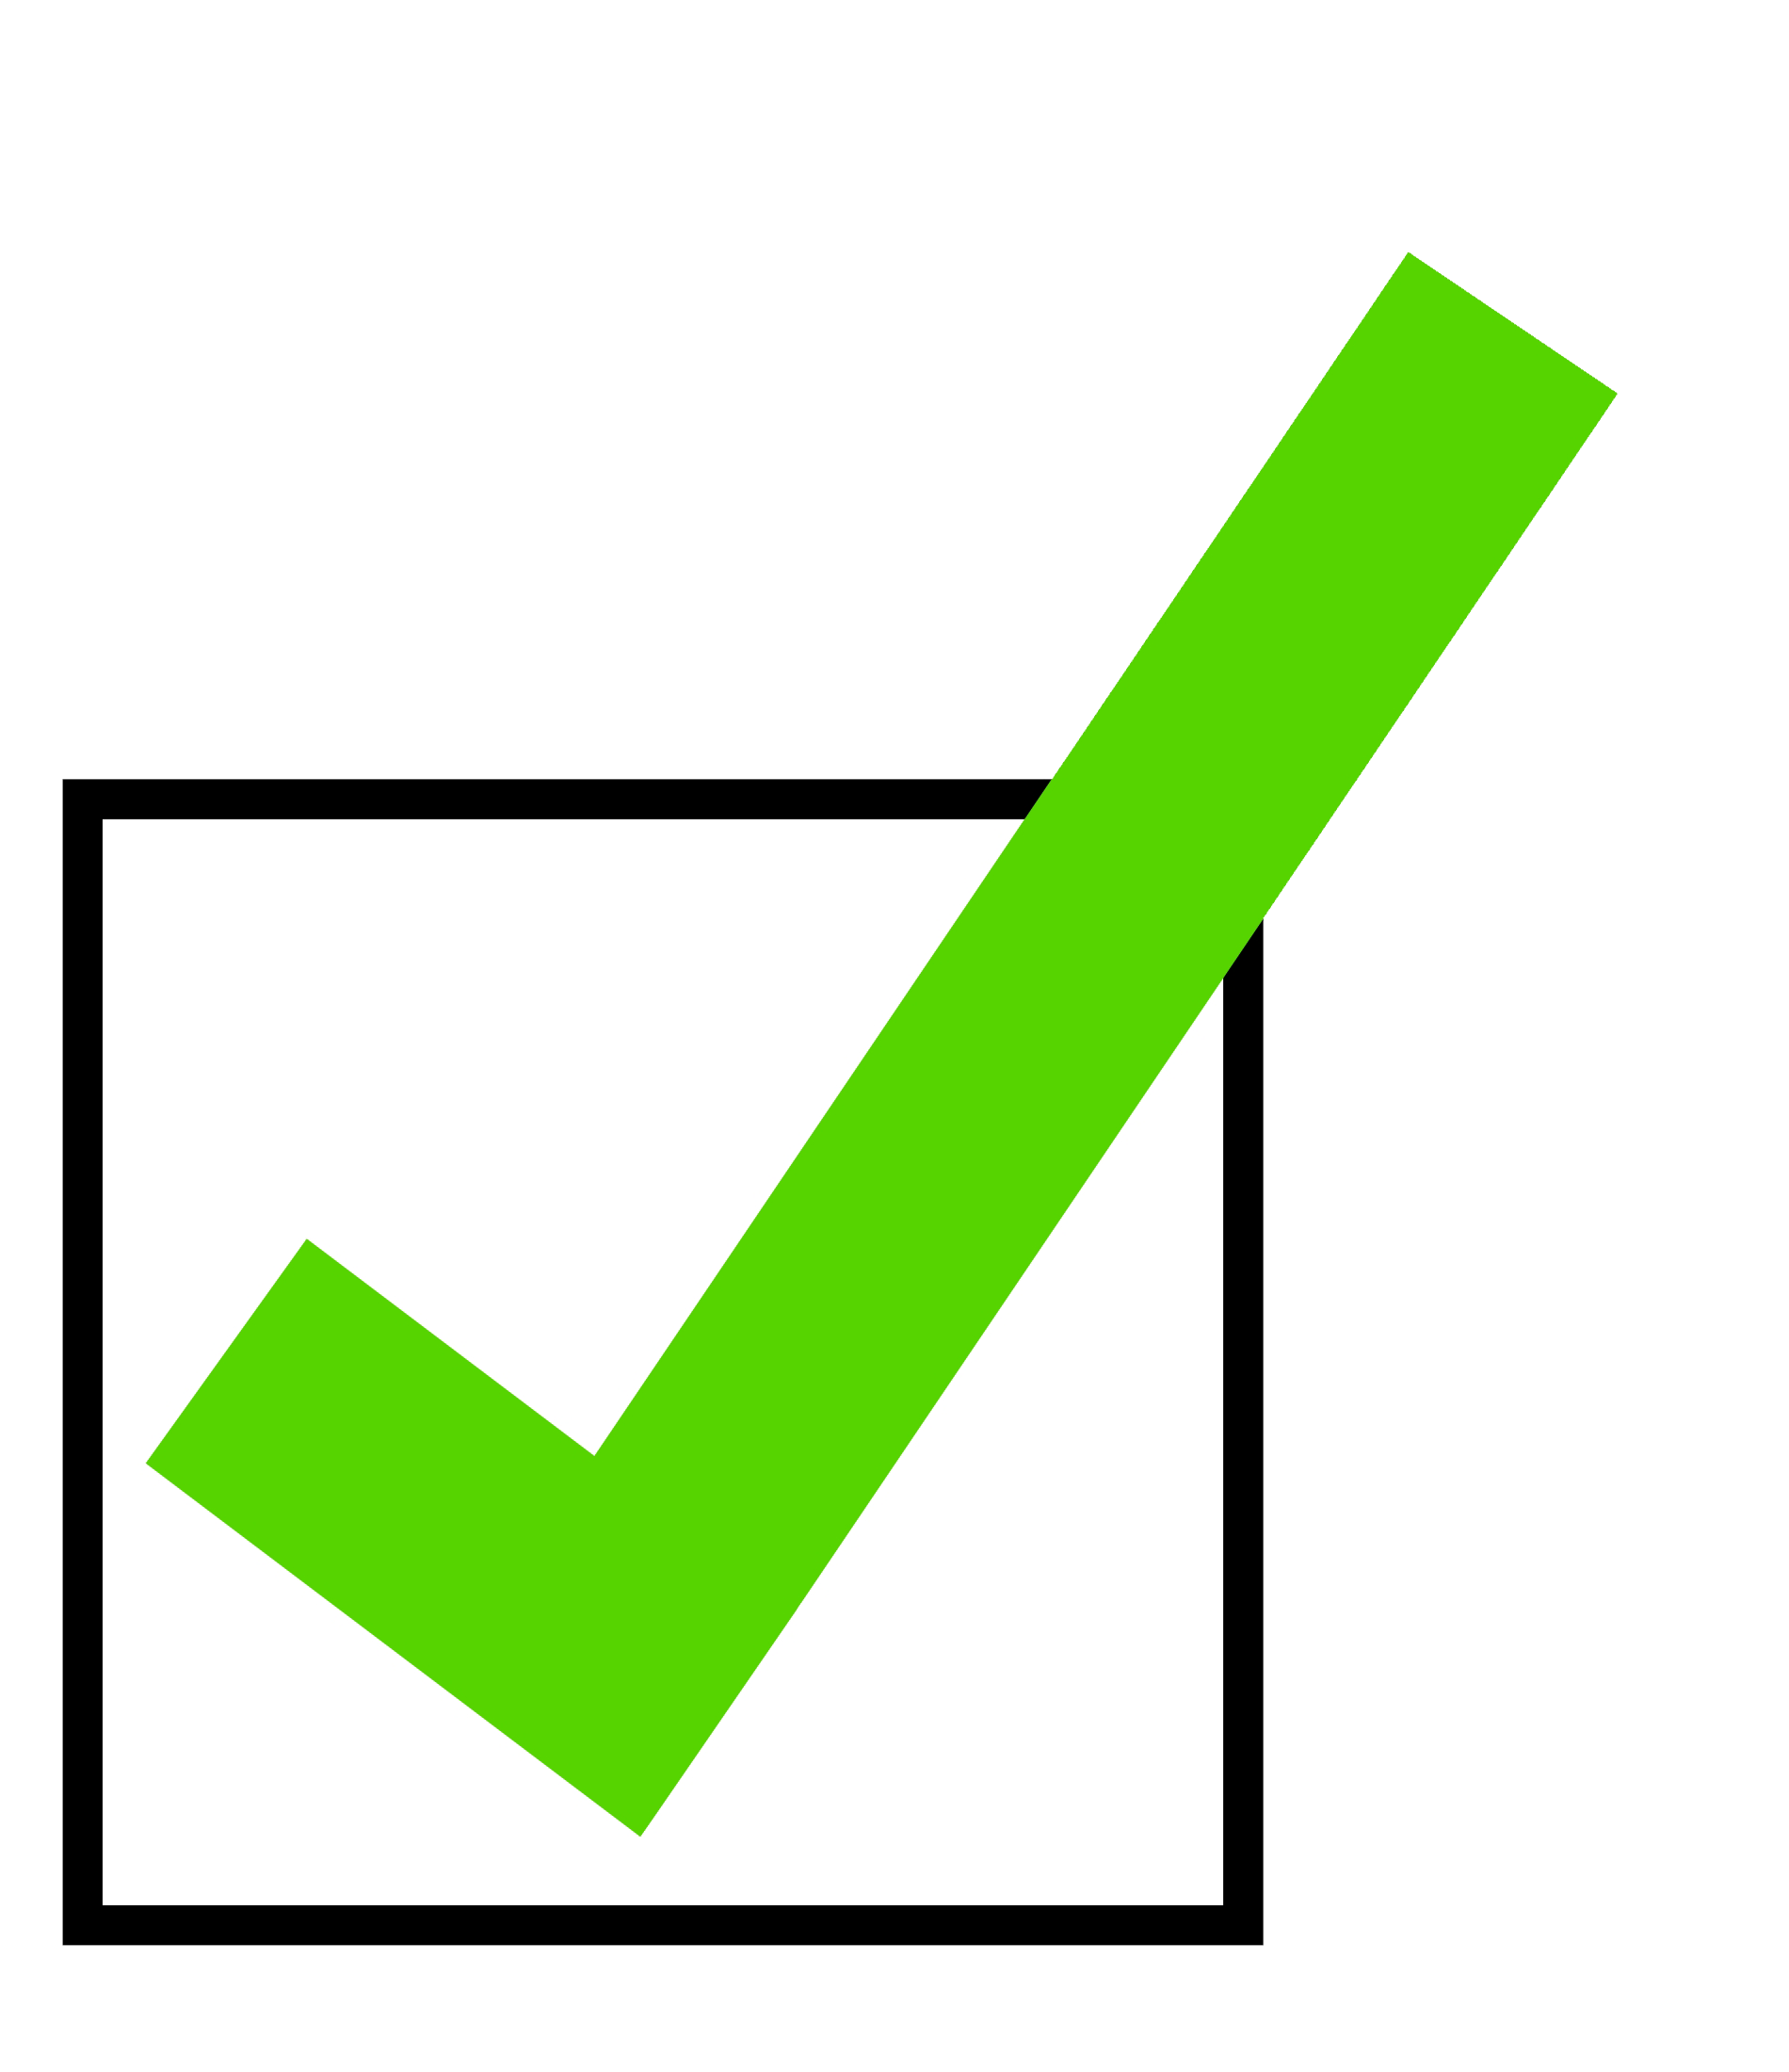 Checkbox Png - Clipart library-Checkbox Png - Clipart library-16